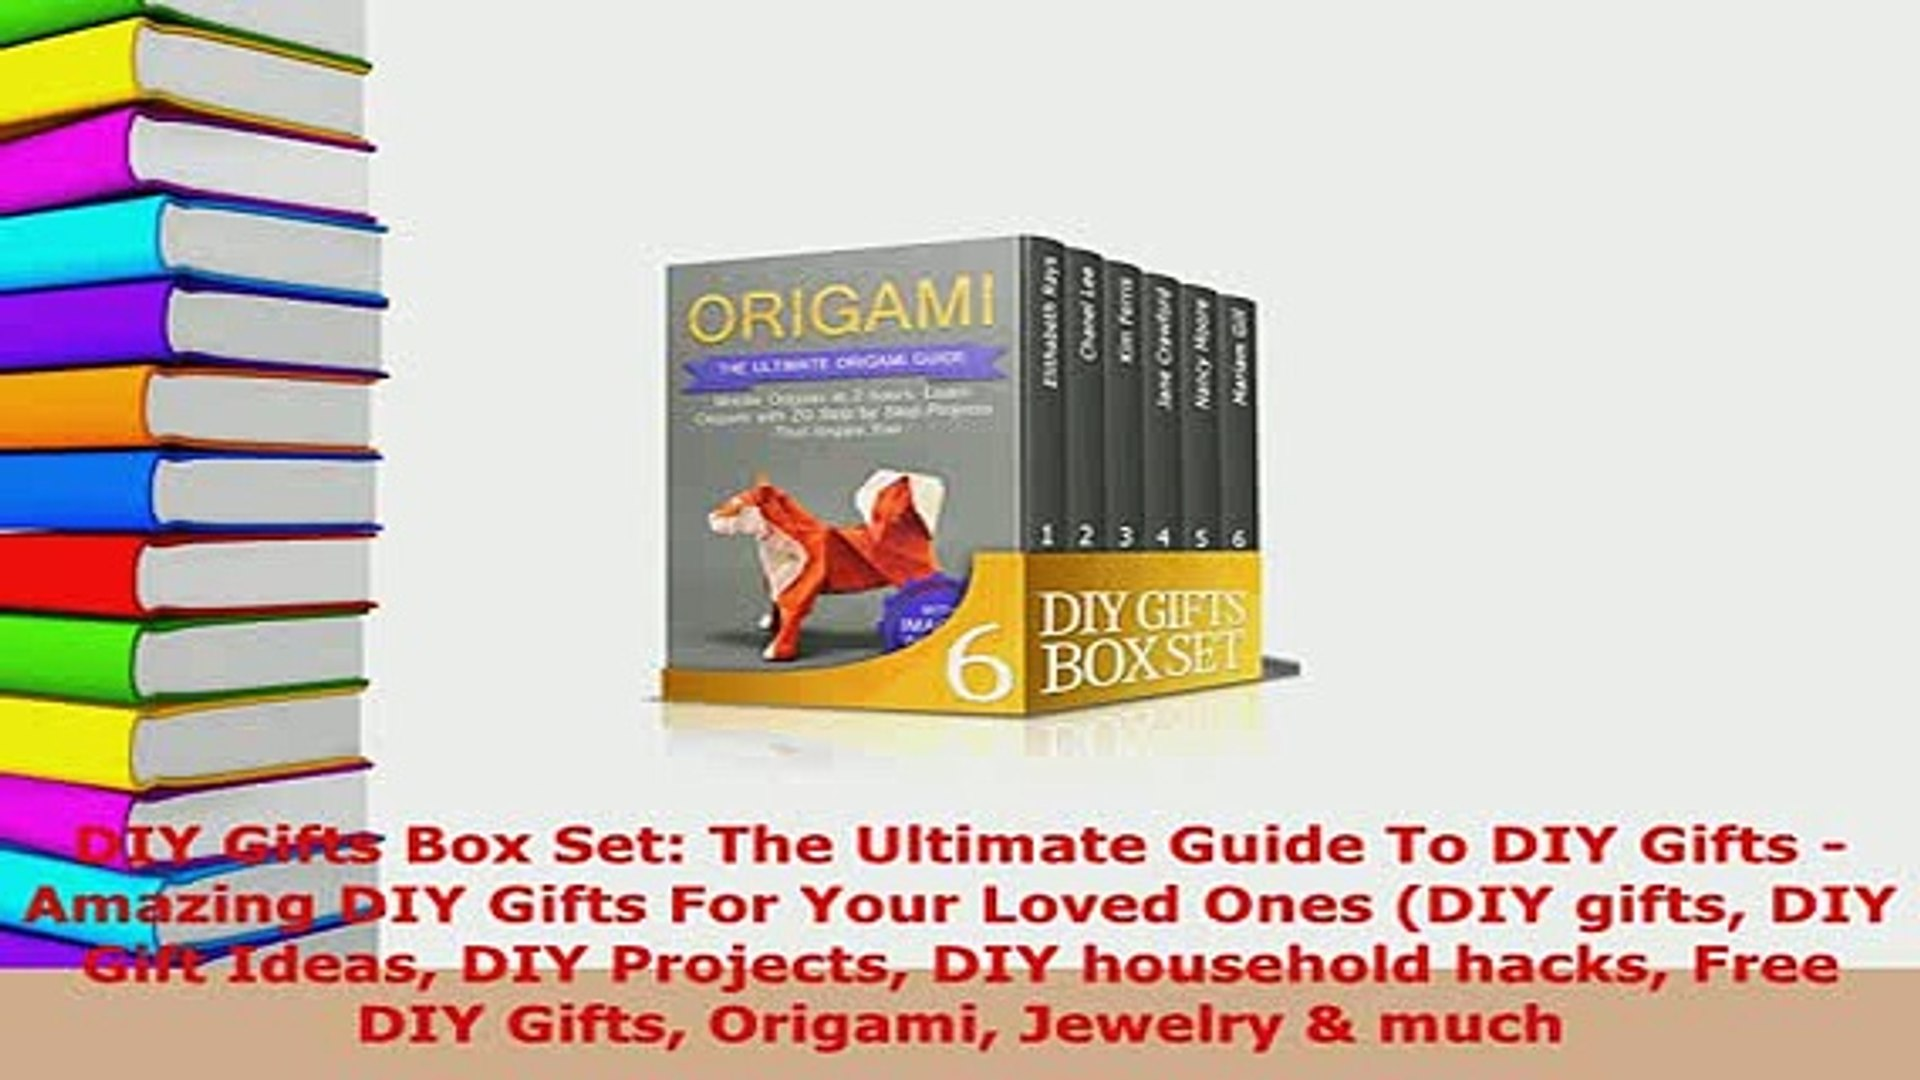 PDF  DIY Gifts Box Set The Ultimate Guide To DIY Gifts  Amazing DIY Gifts For Your Loved Ones Ebook